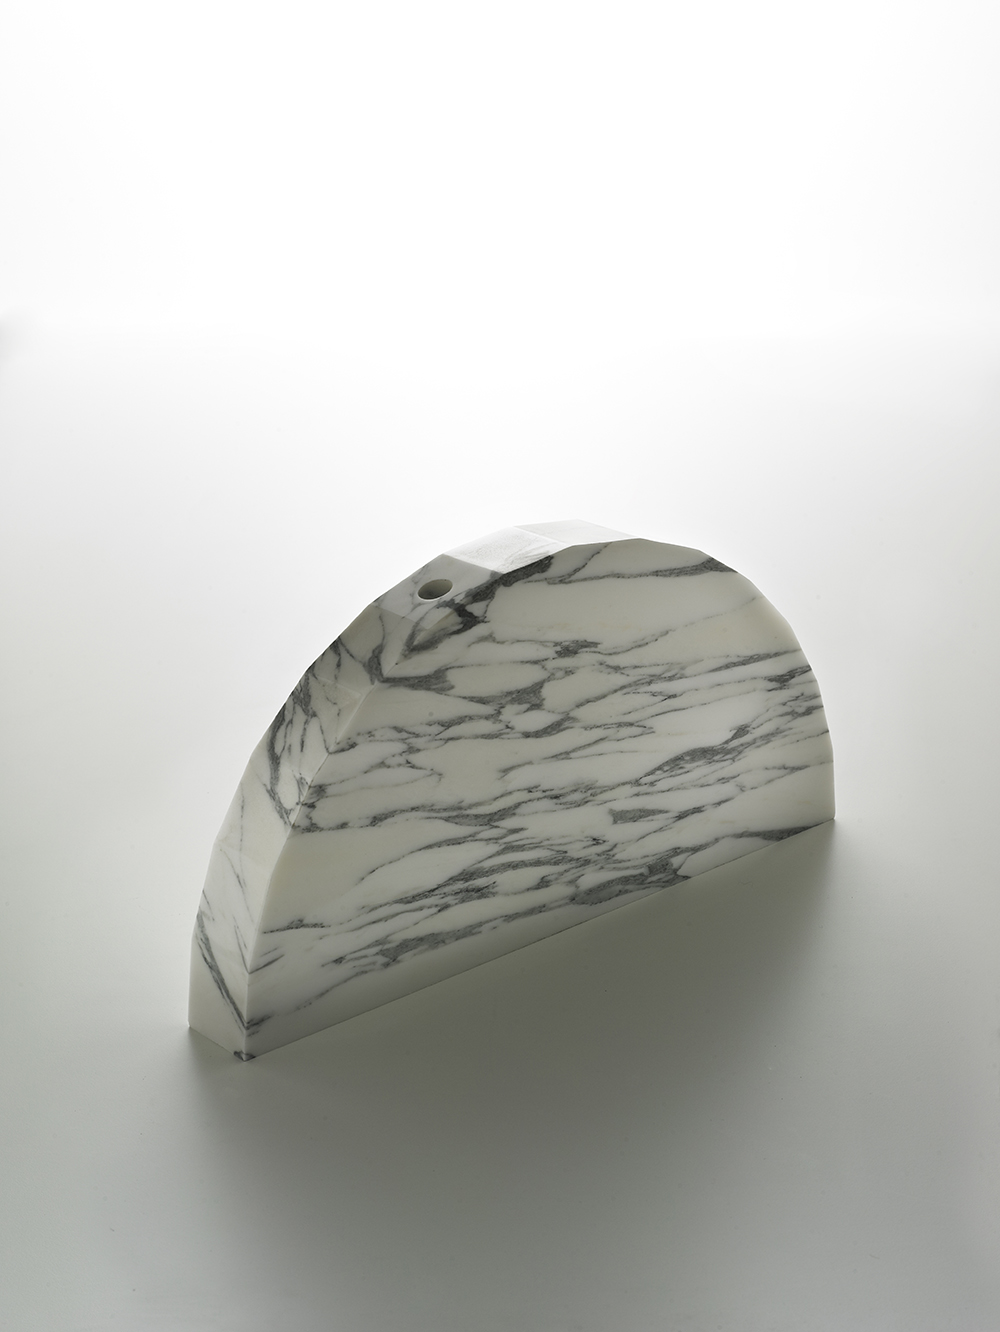 Brooksbank & Collins_Caulis_Arabascatta Marble_1